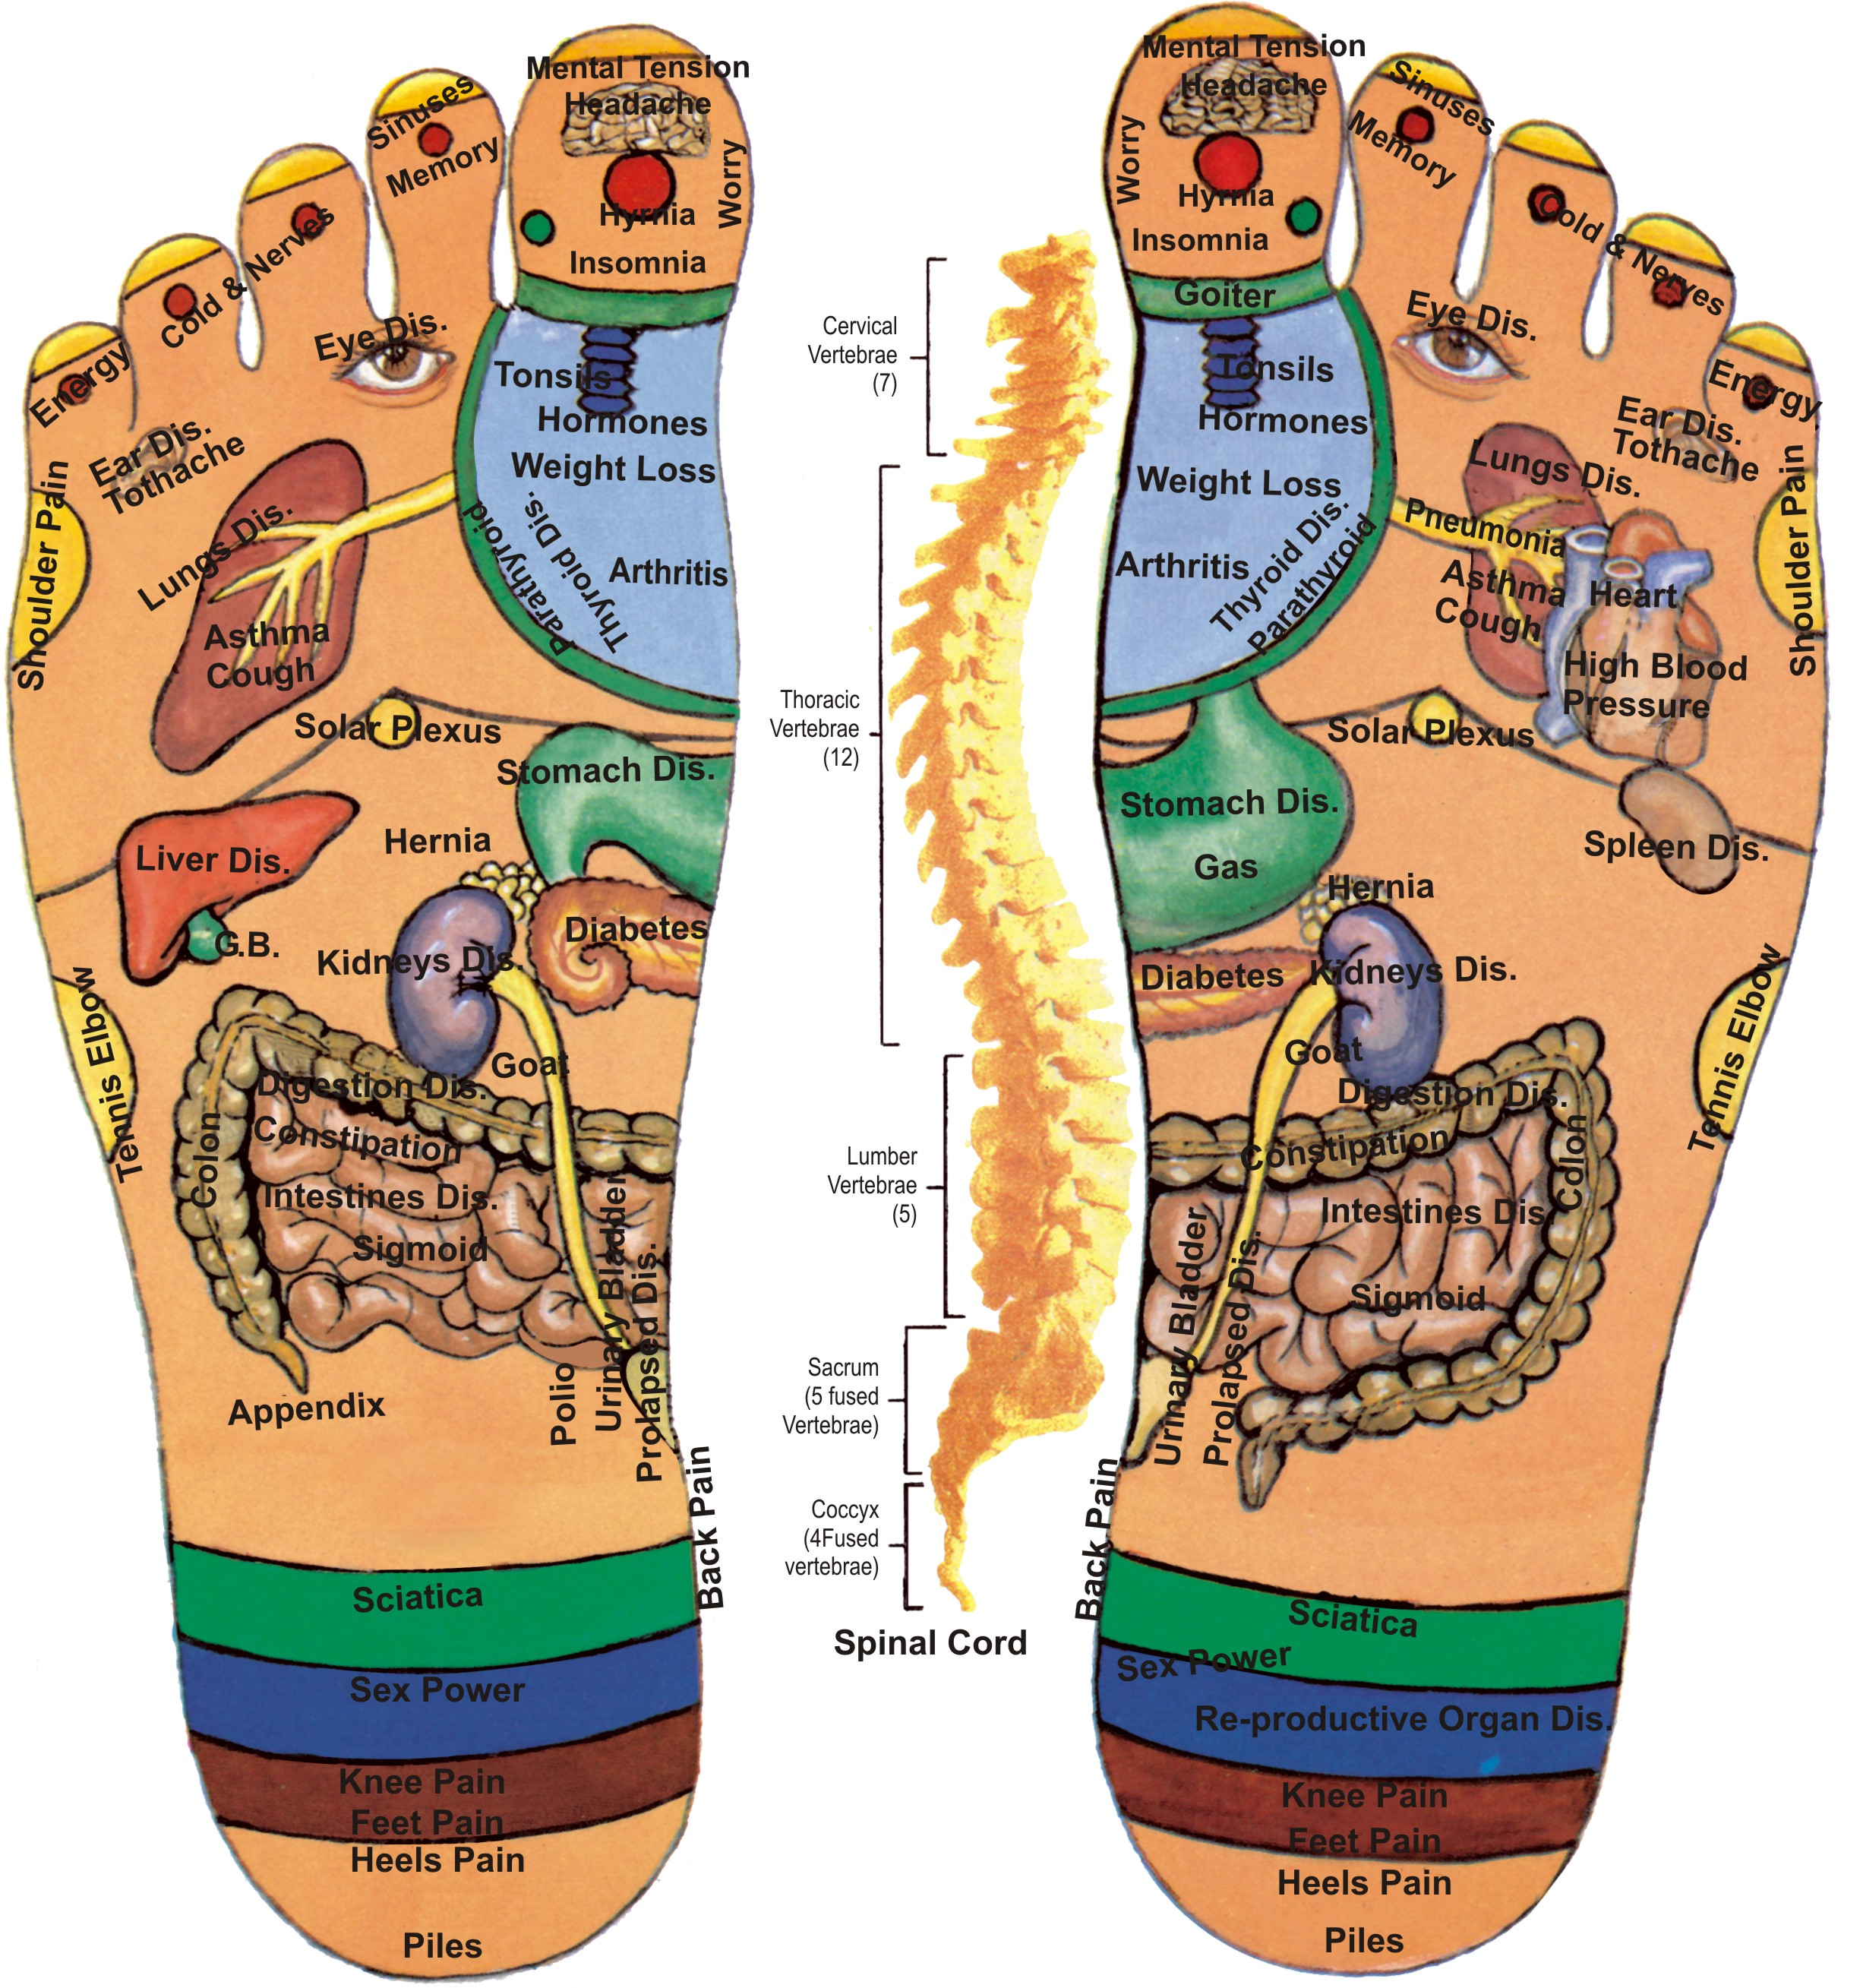 Foot Reflexology Pressure Points For Common Ailments